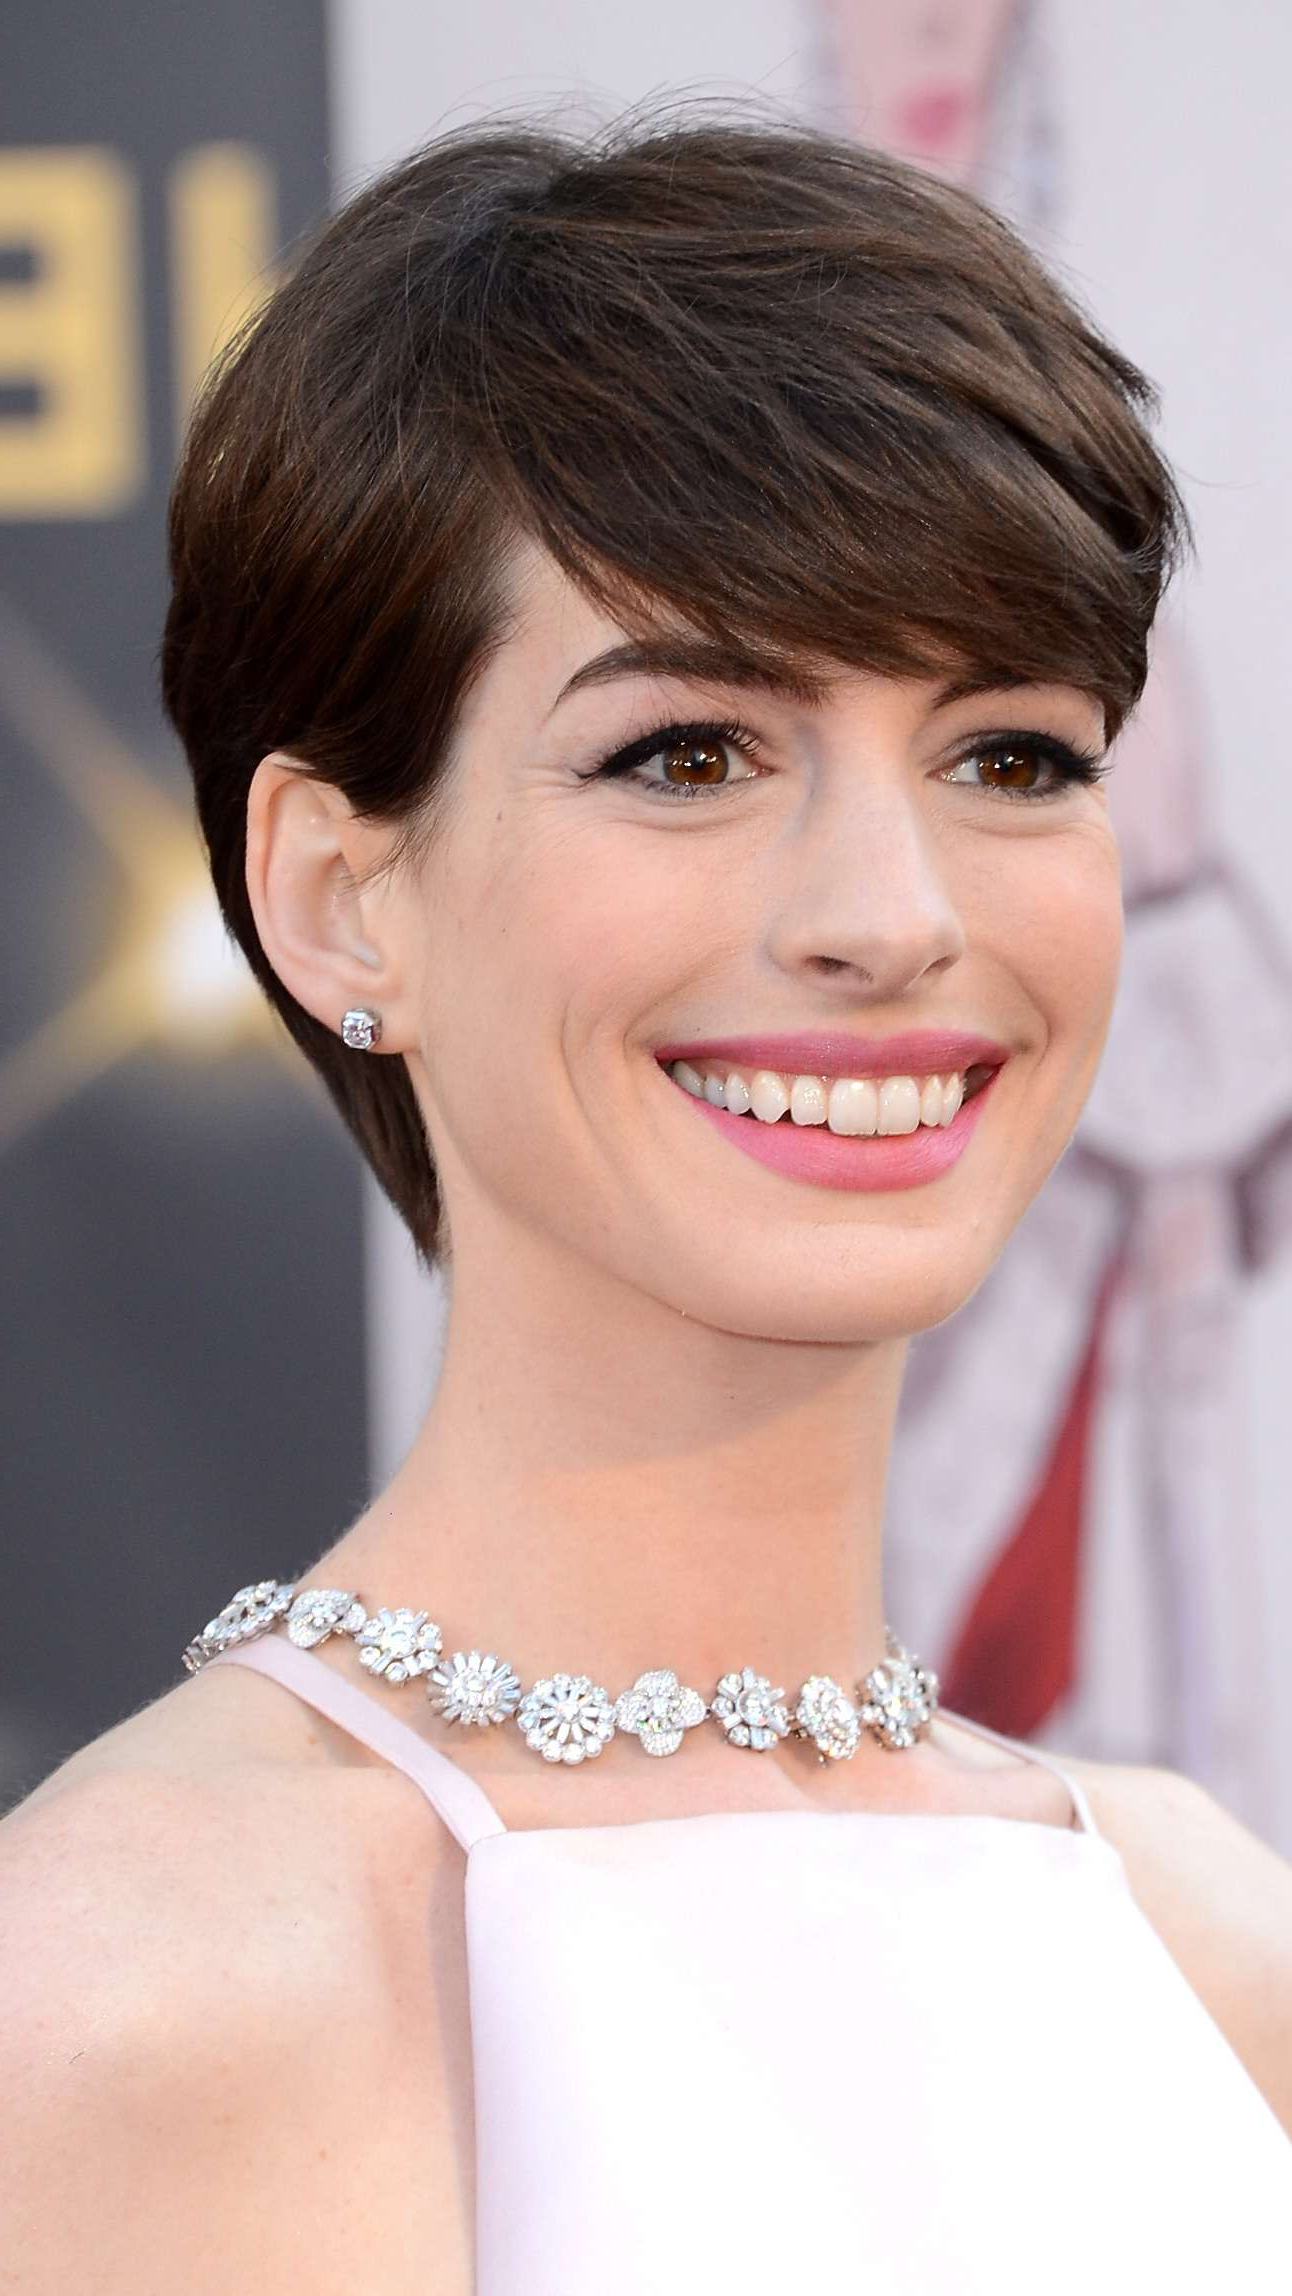 22 Inspiring Short Haircuts For Every Face Shape For Short Haircuts For Square Jawline (View 21 of 25)